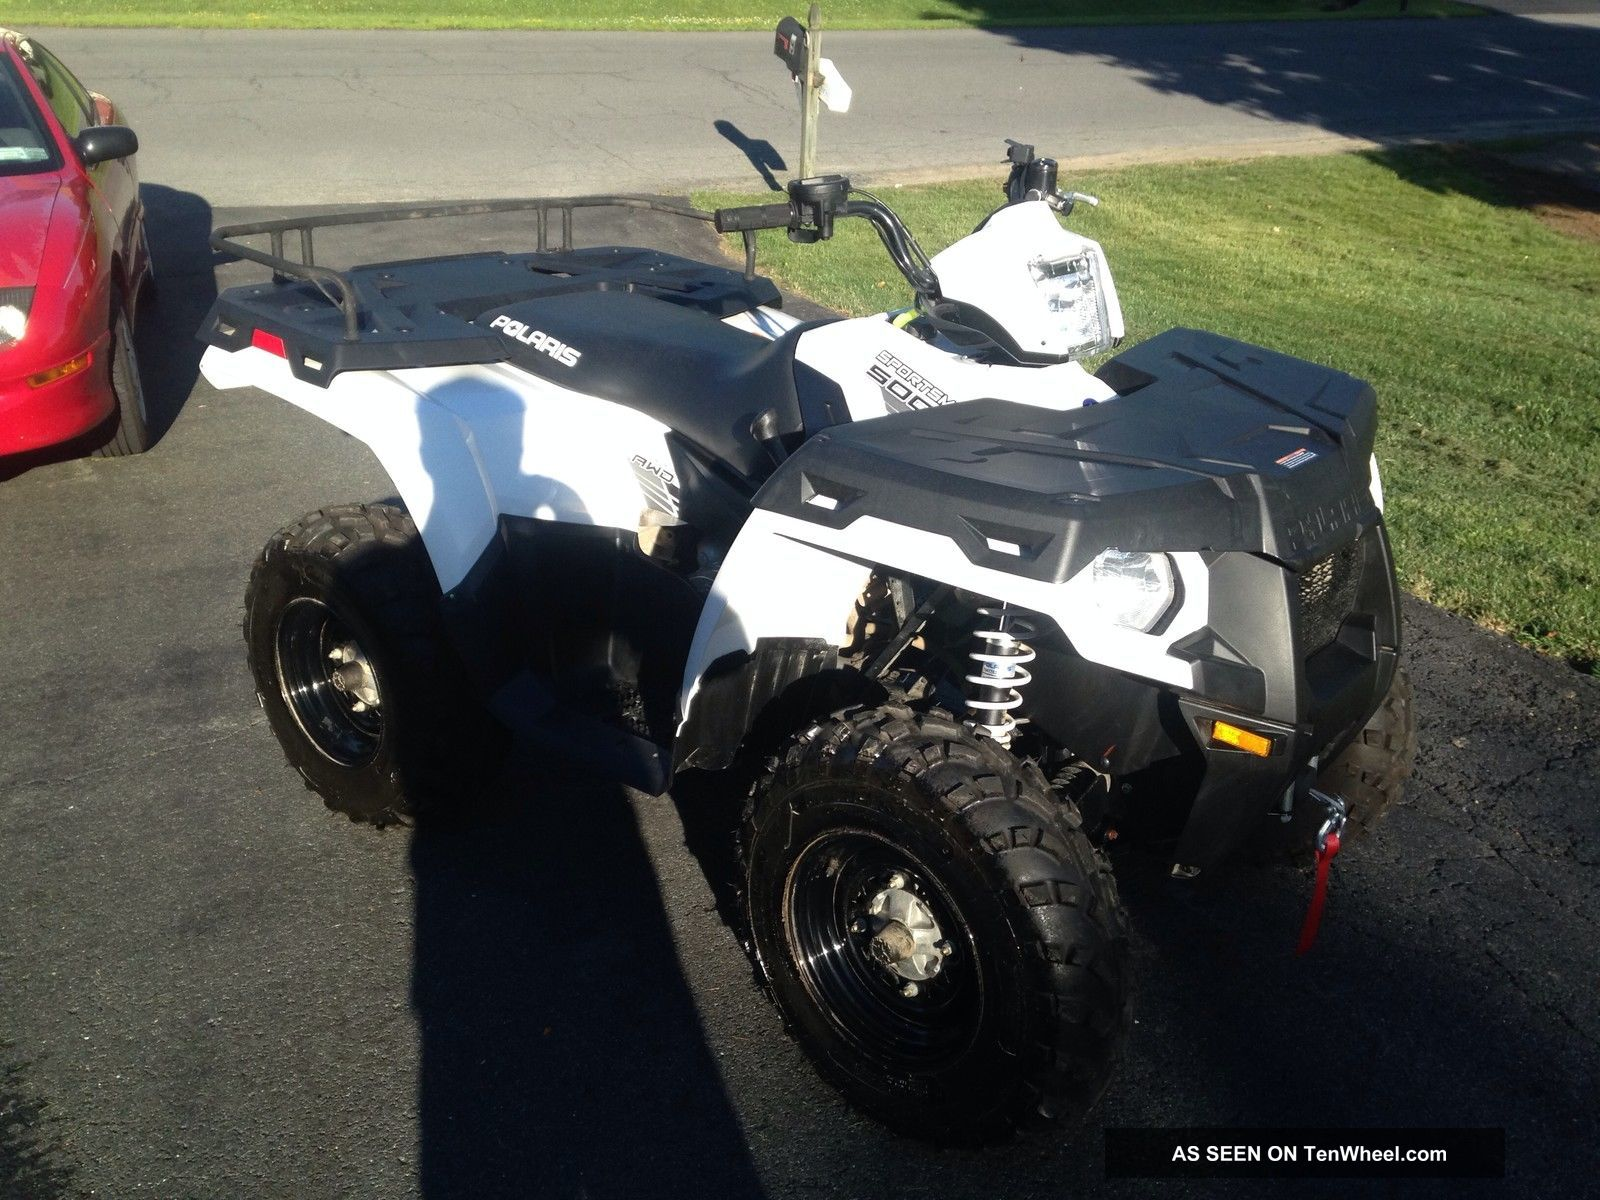 2013 Polaris Sportsman 500 Polaris photo